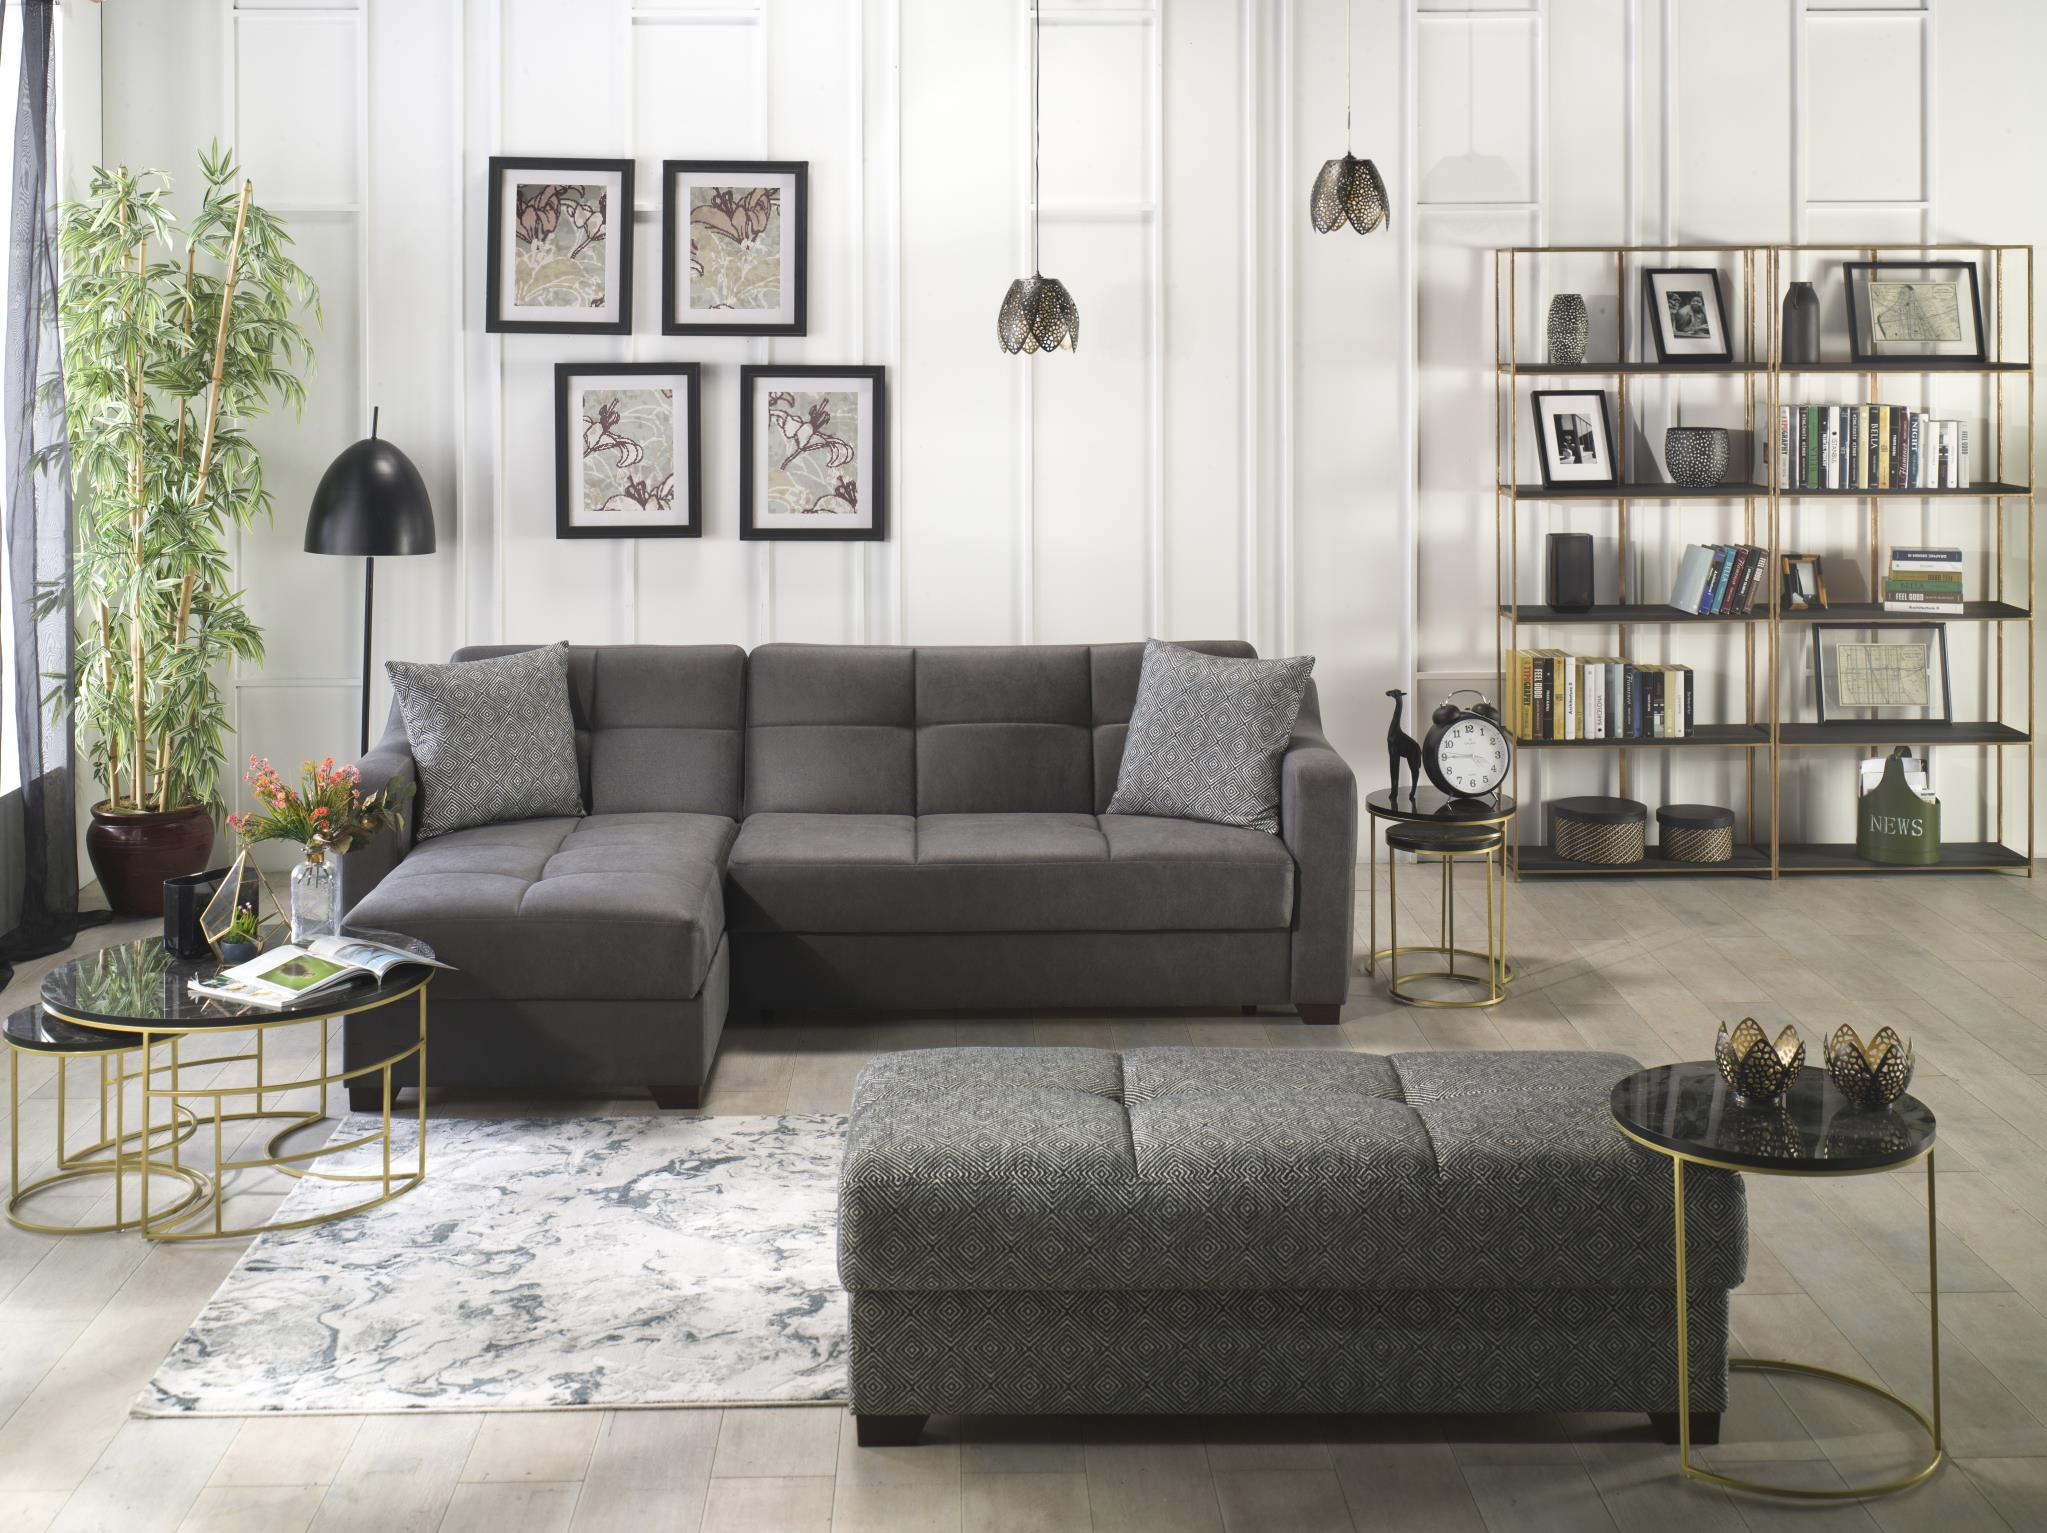 tahoe melson dark gray sectional sofa